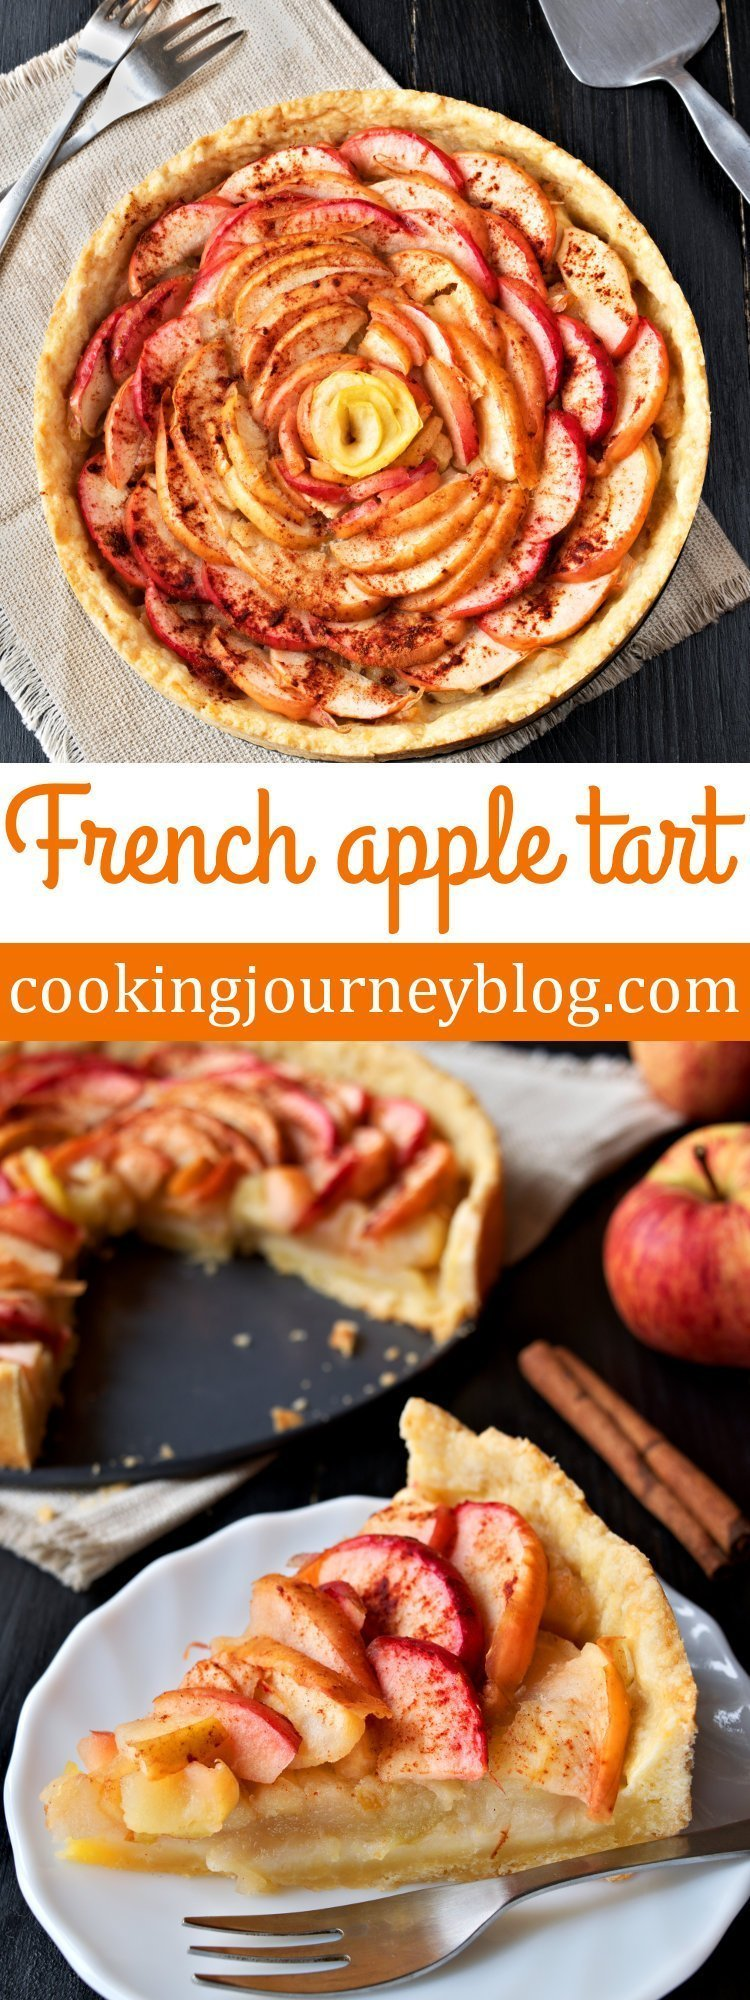 French apple tart – Apple dessert recipes